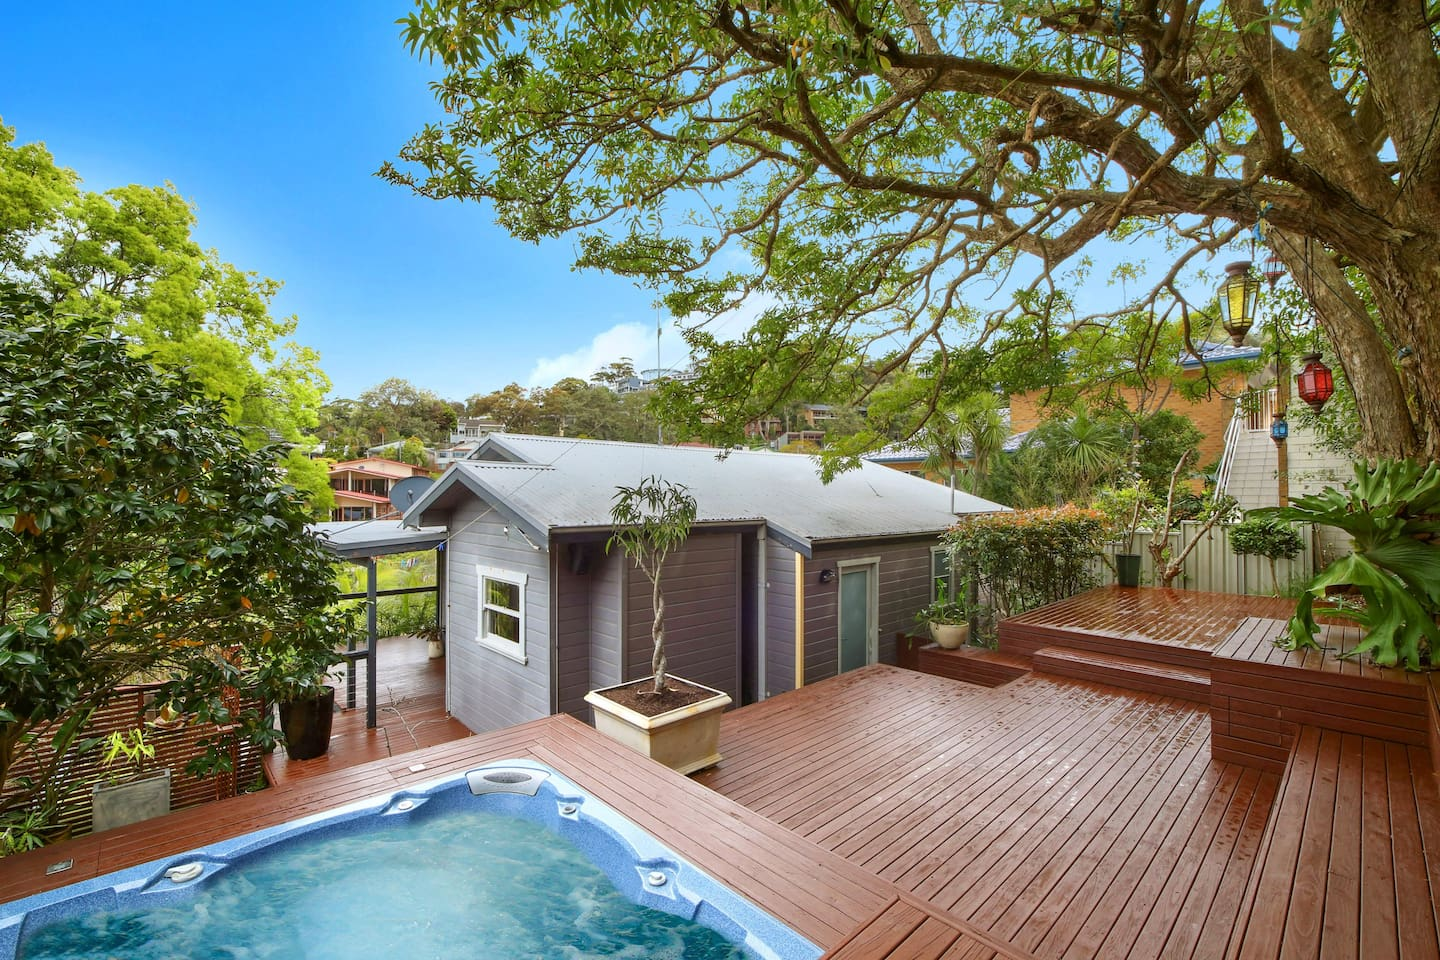 We love our back deck! It's private and comfortable, and just a few minutes stroll from Terrigal beach. The spa is perfect in the evening following a day in the sun.